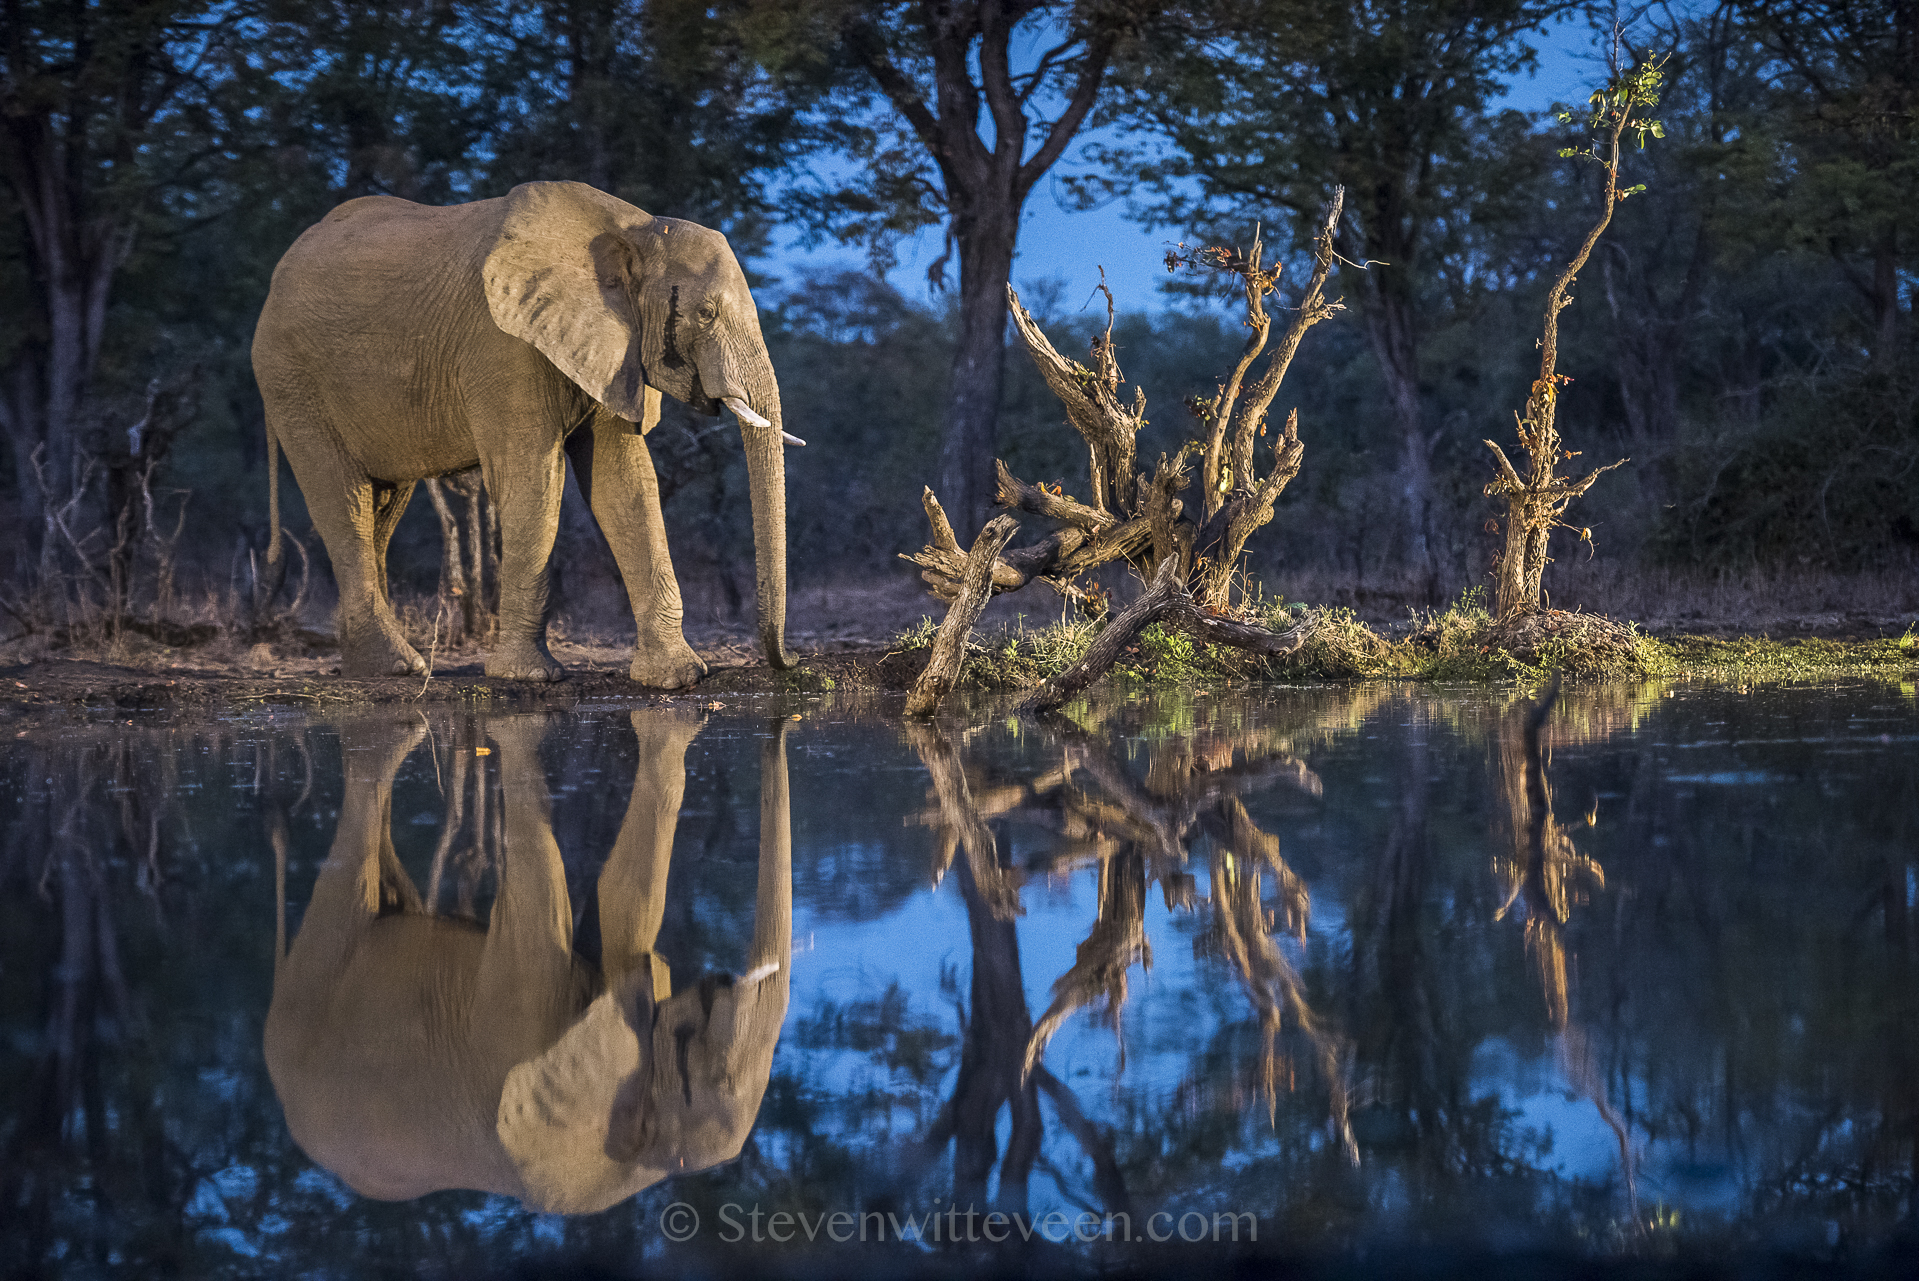 Elephant reflection | wildlife photography safari